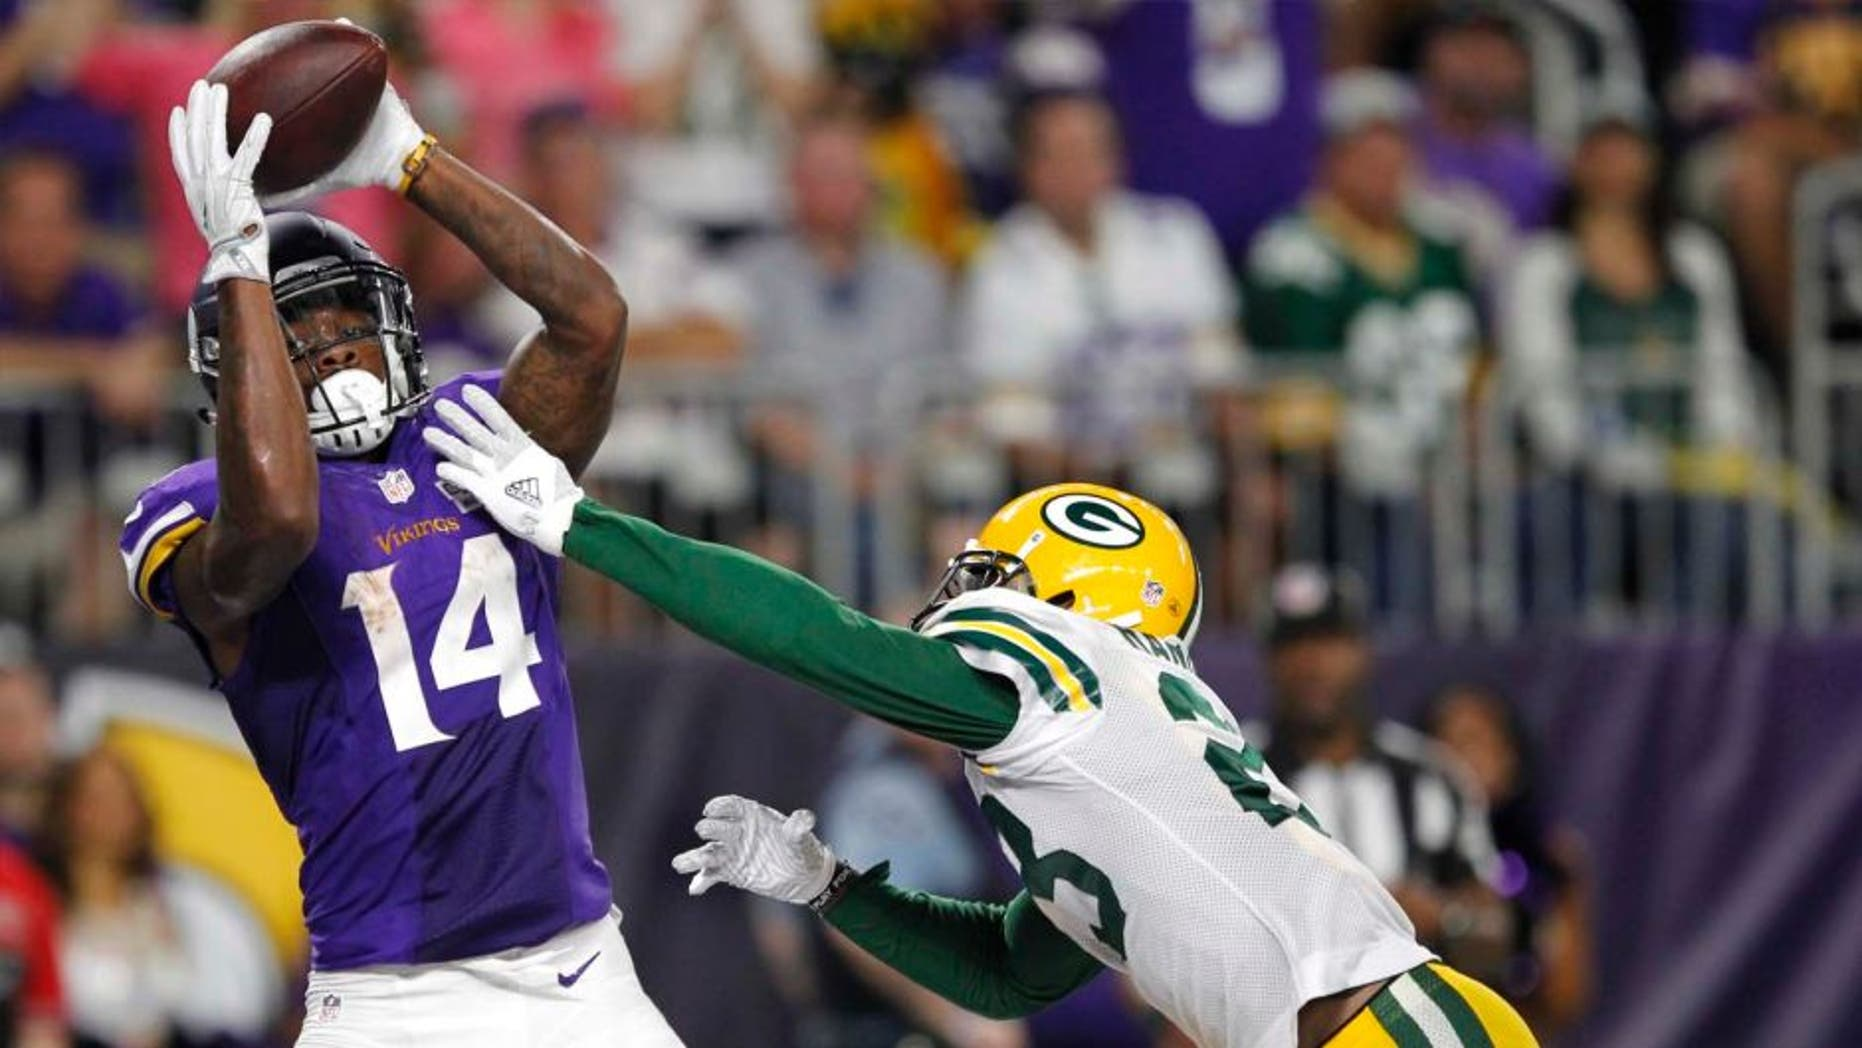 Minnesota Vikings wide receiver Stefon Diggs catches a 25-yard touchdown pass over Green Bay Packers cornerback Damarious Randall during the second half Sunday, Sept. 18, 2016, in Minneapolis.